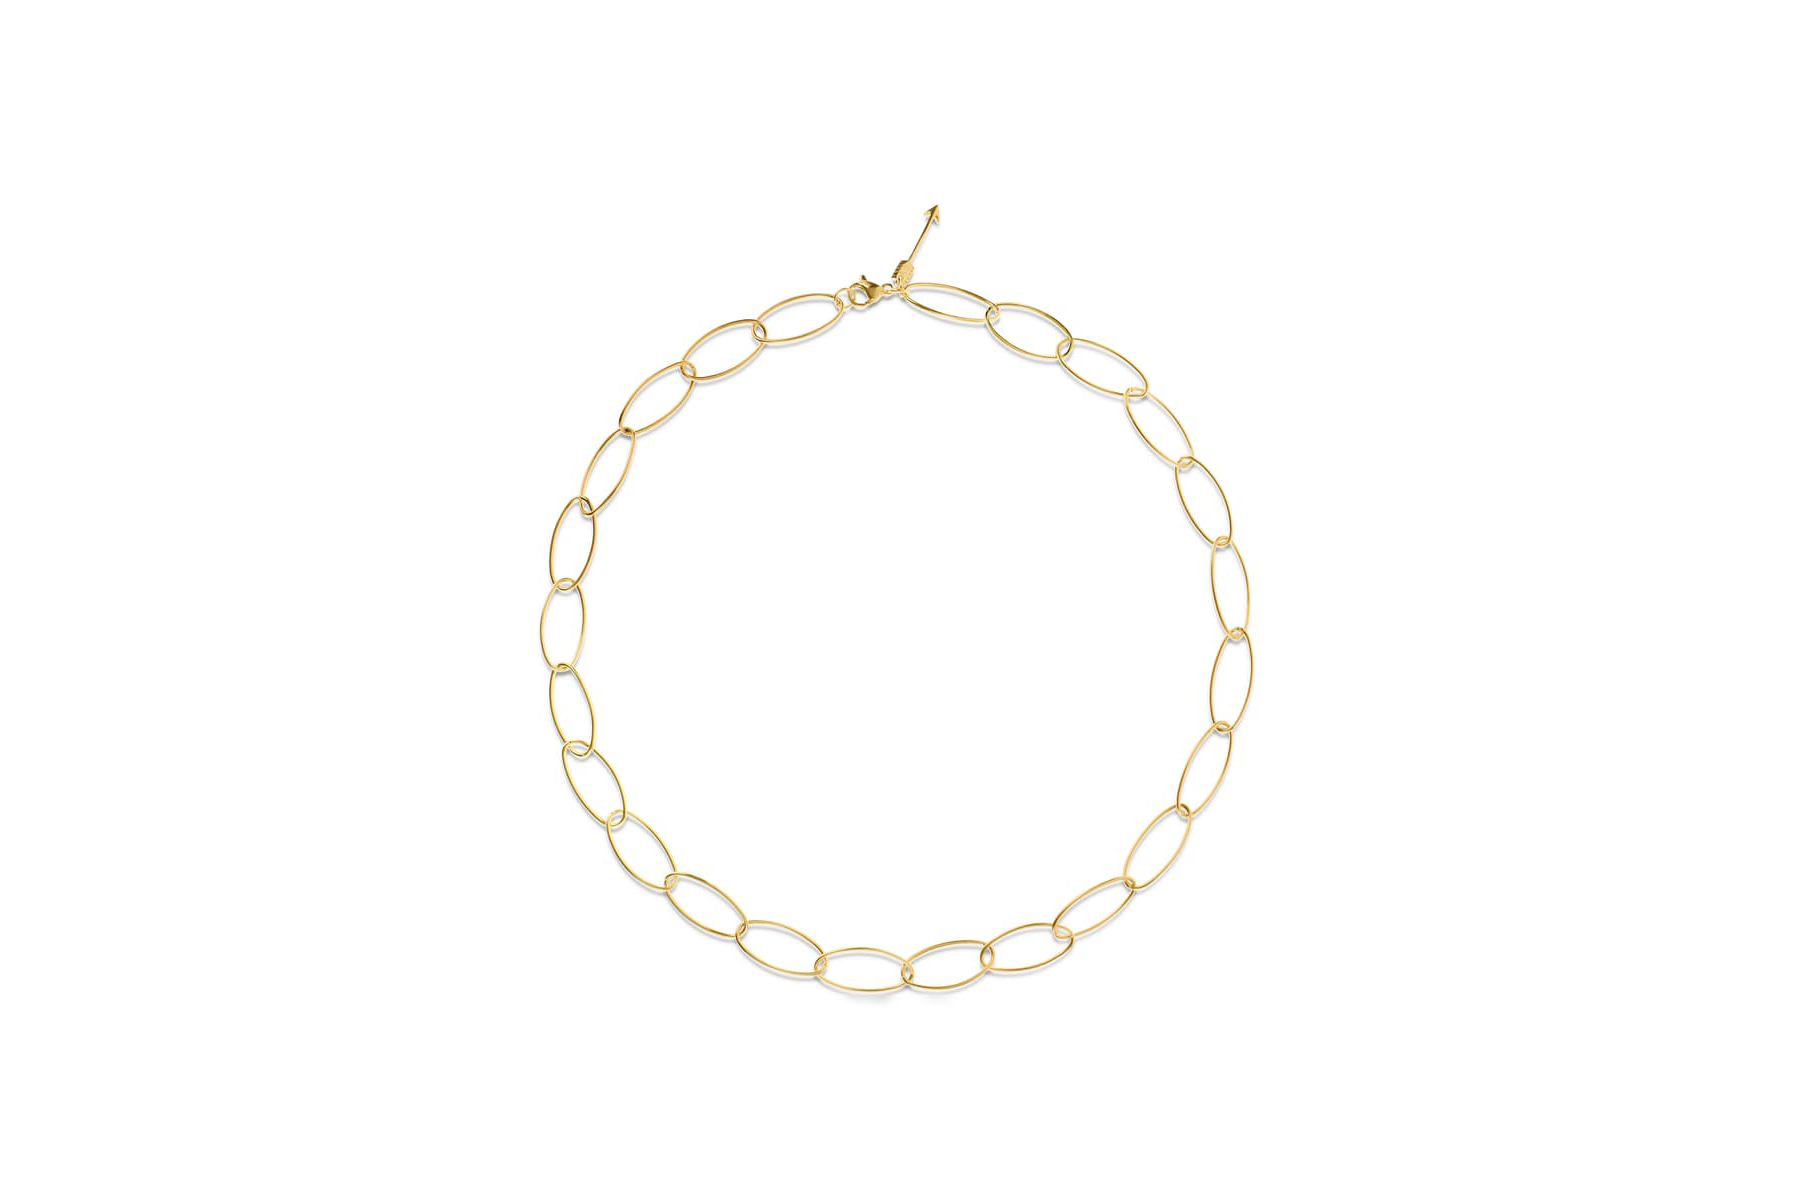 Ellie Vail Celia oval chain link necklace